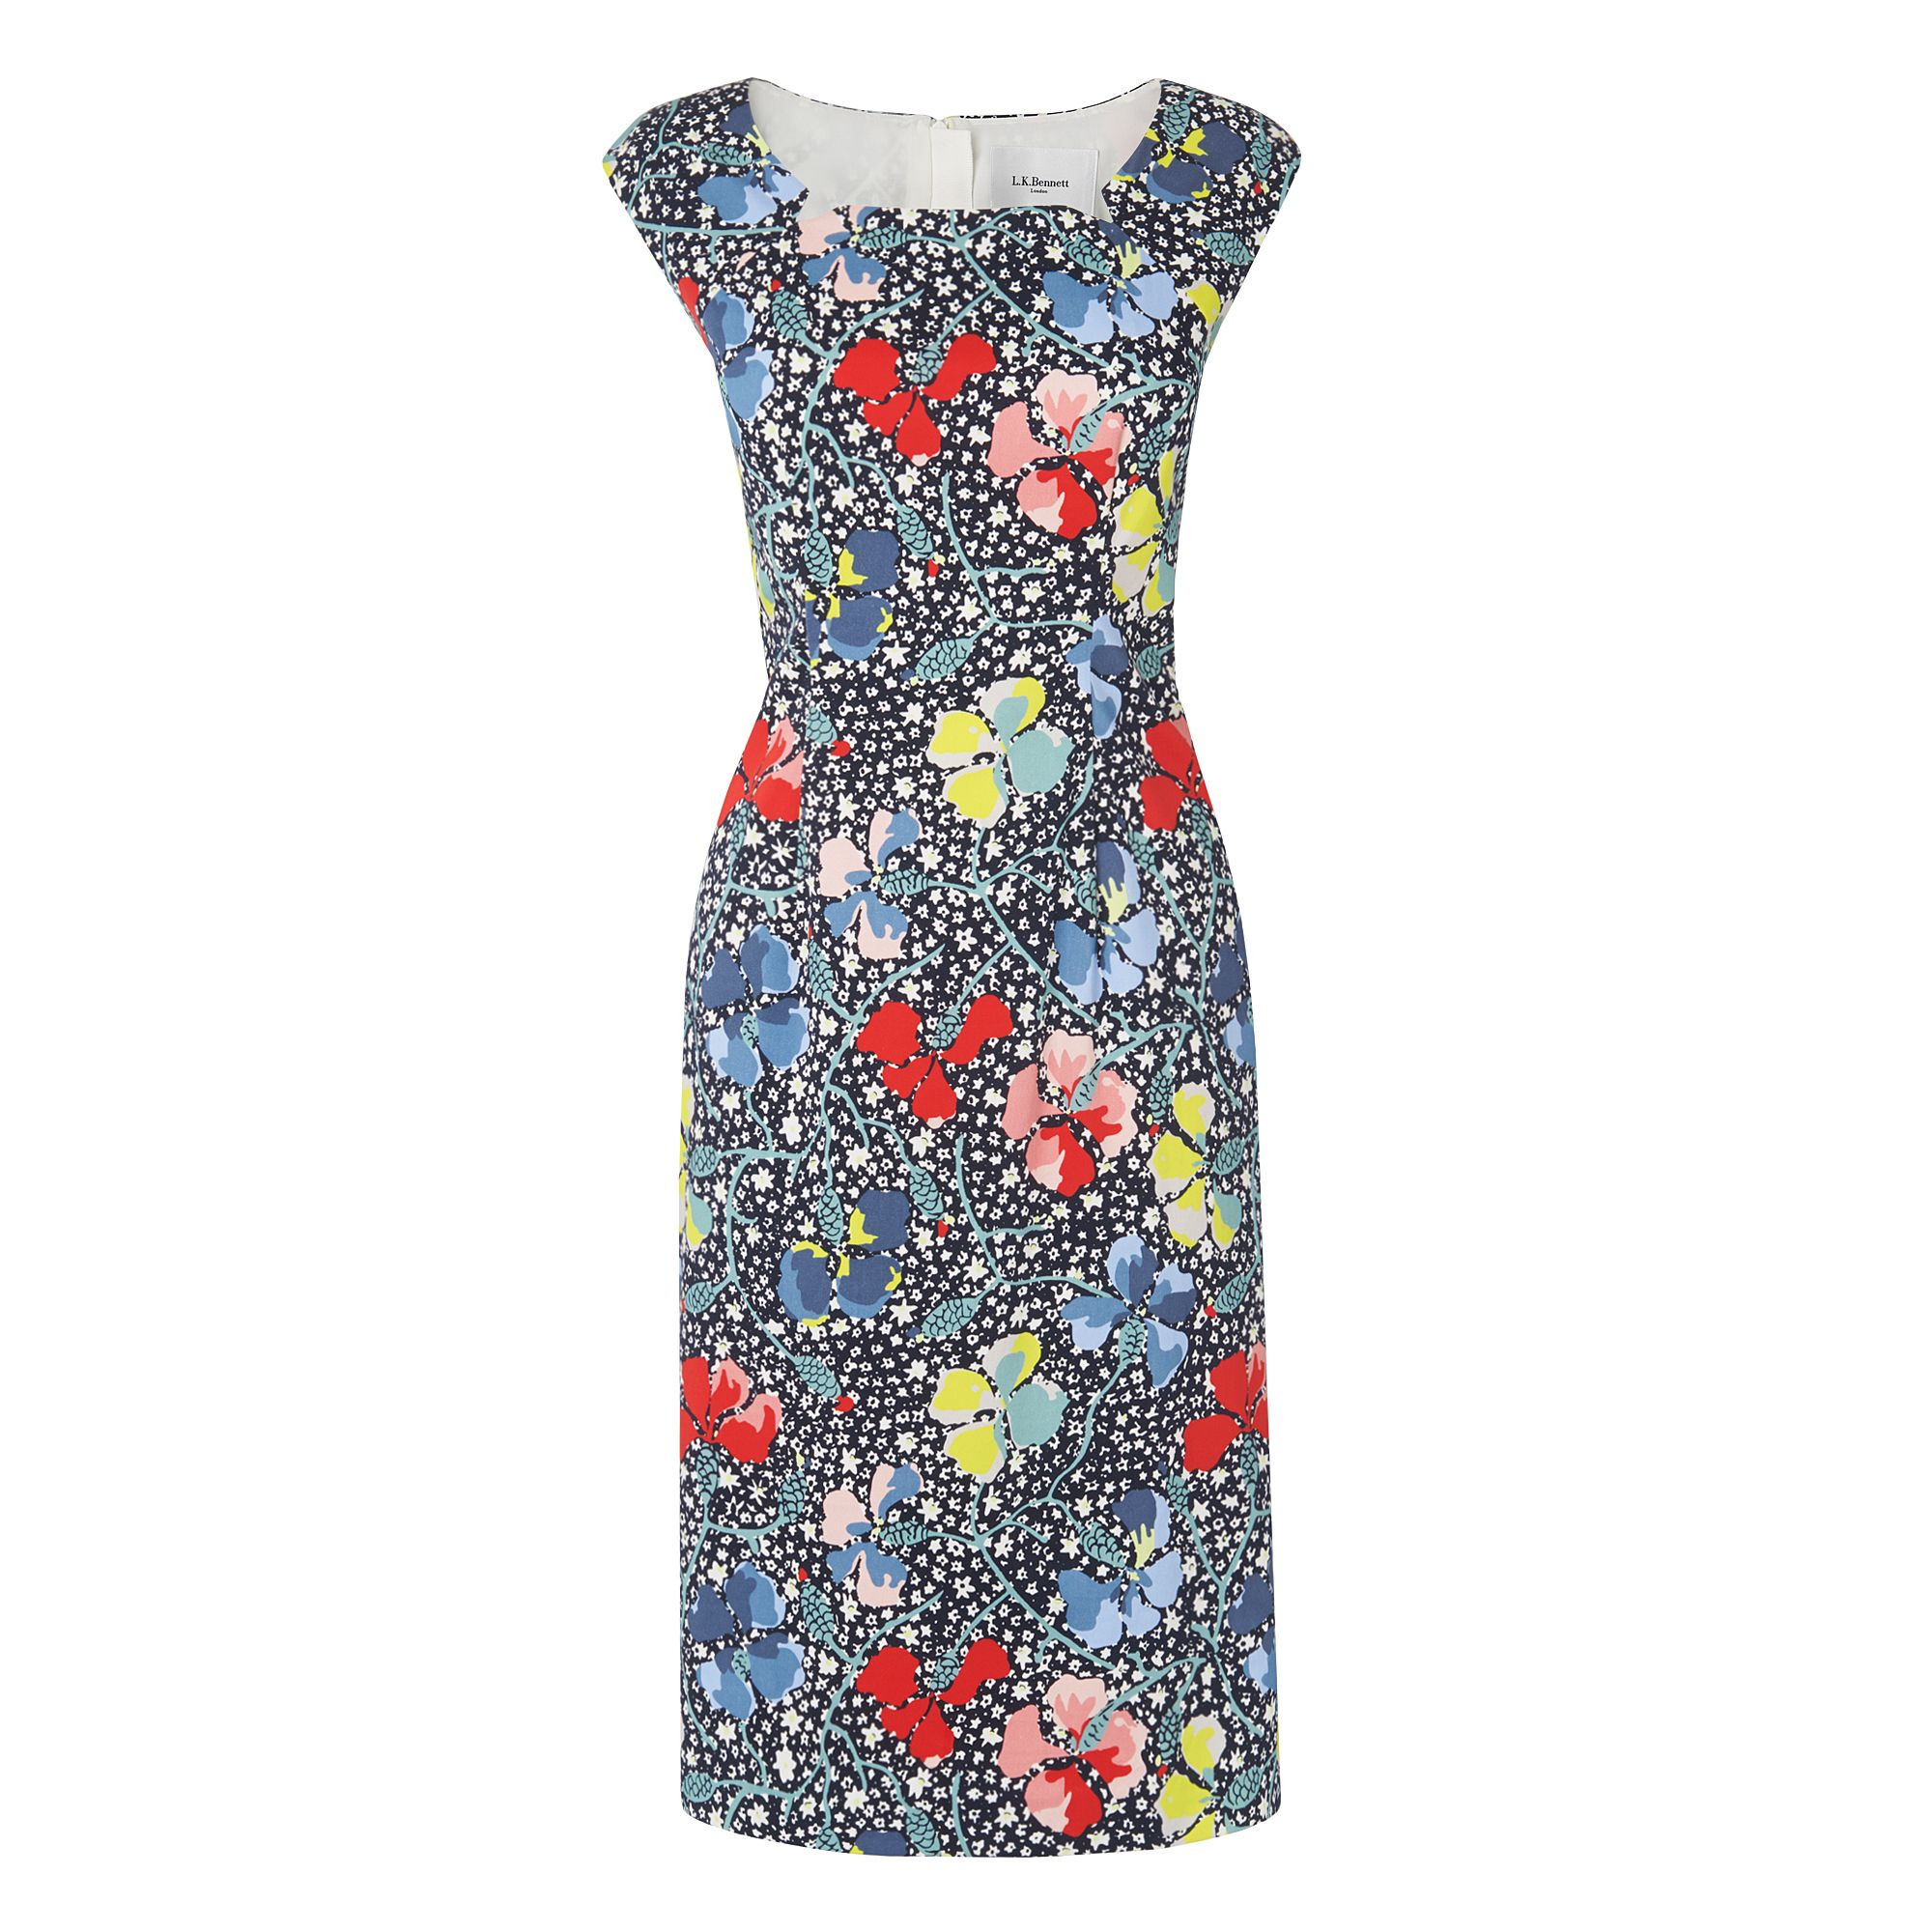 L.K. Bennett Phi Printed Dress Dresses, Multi-Coloured